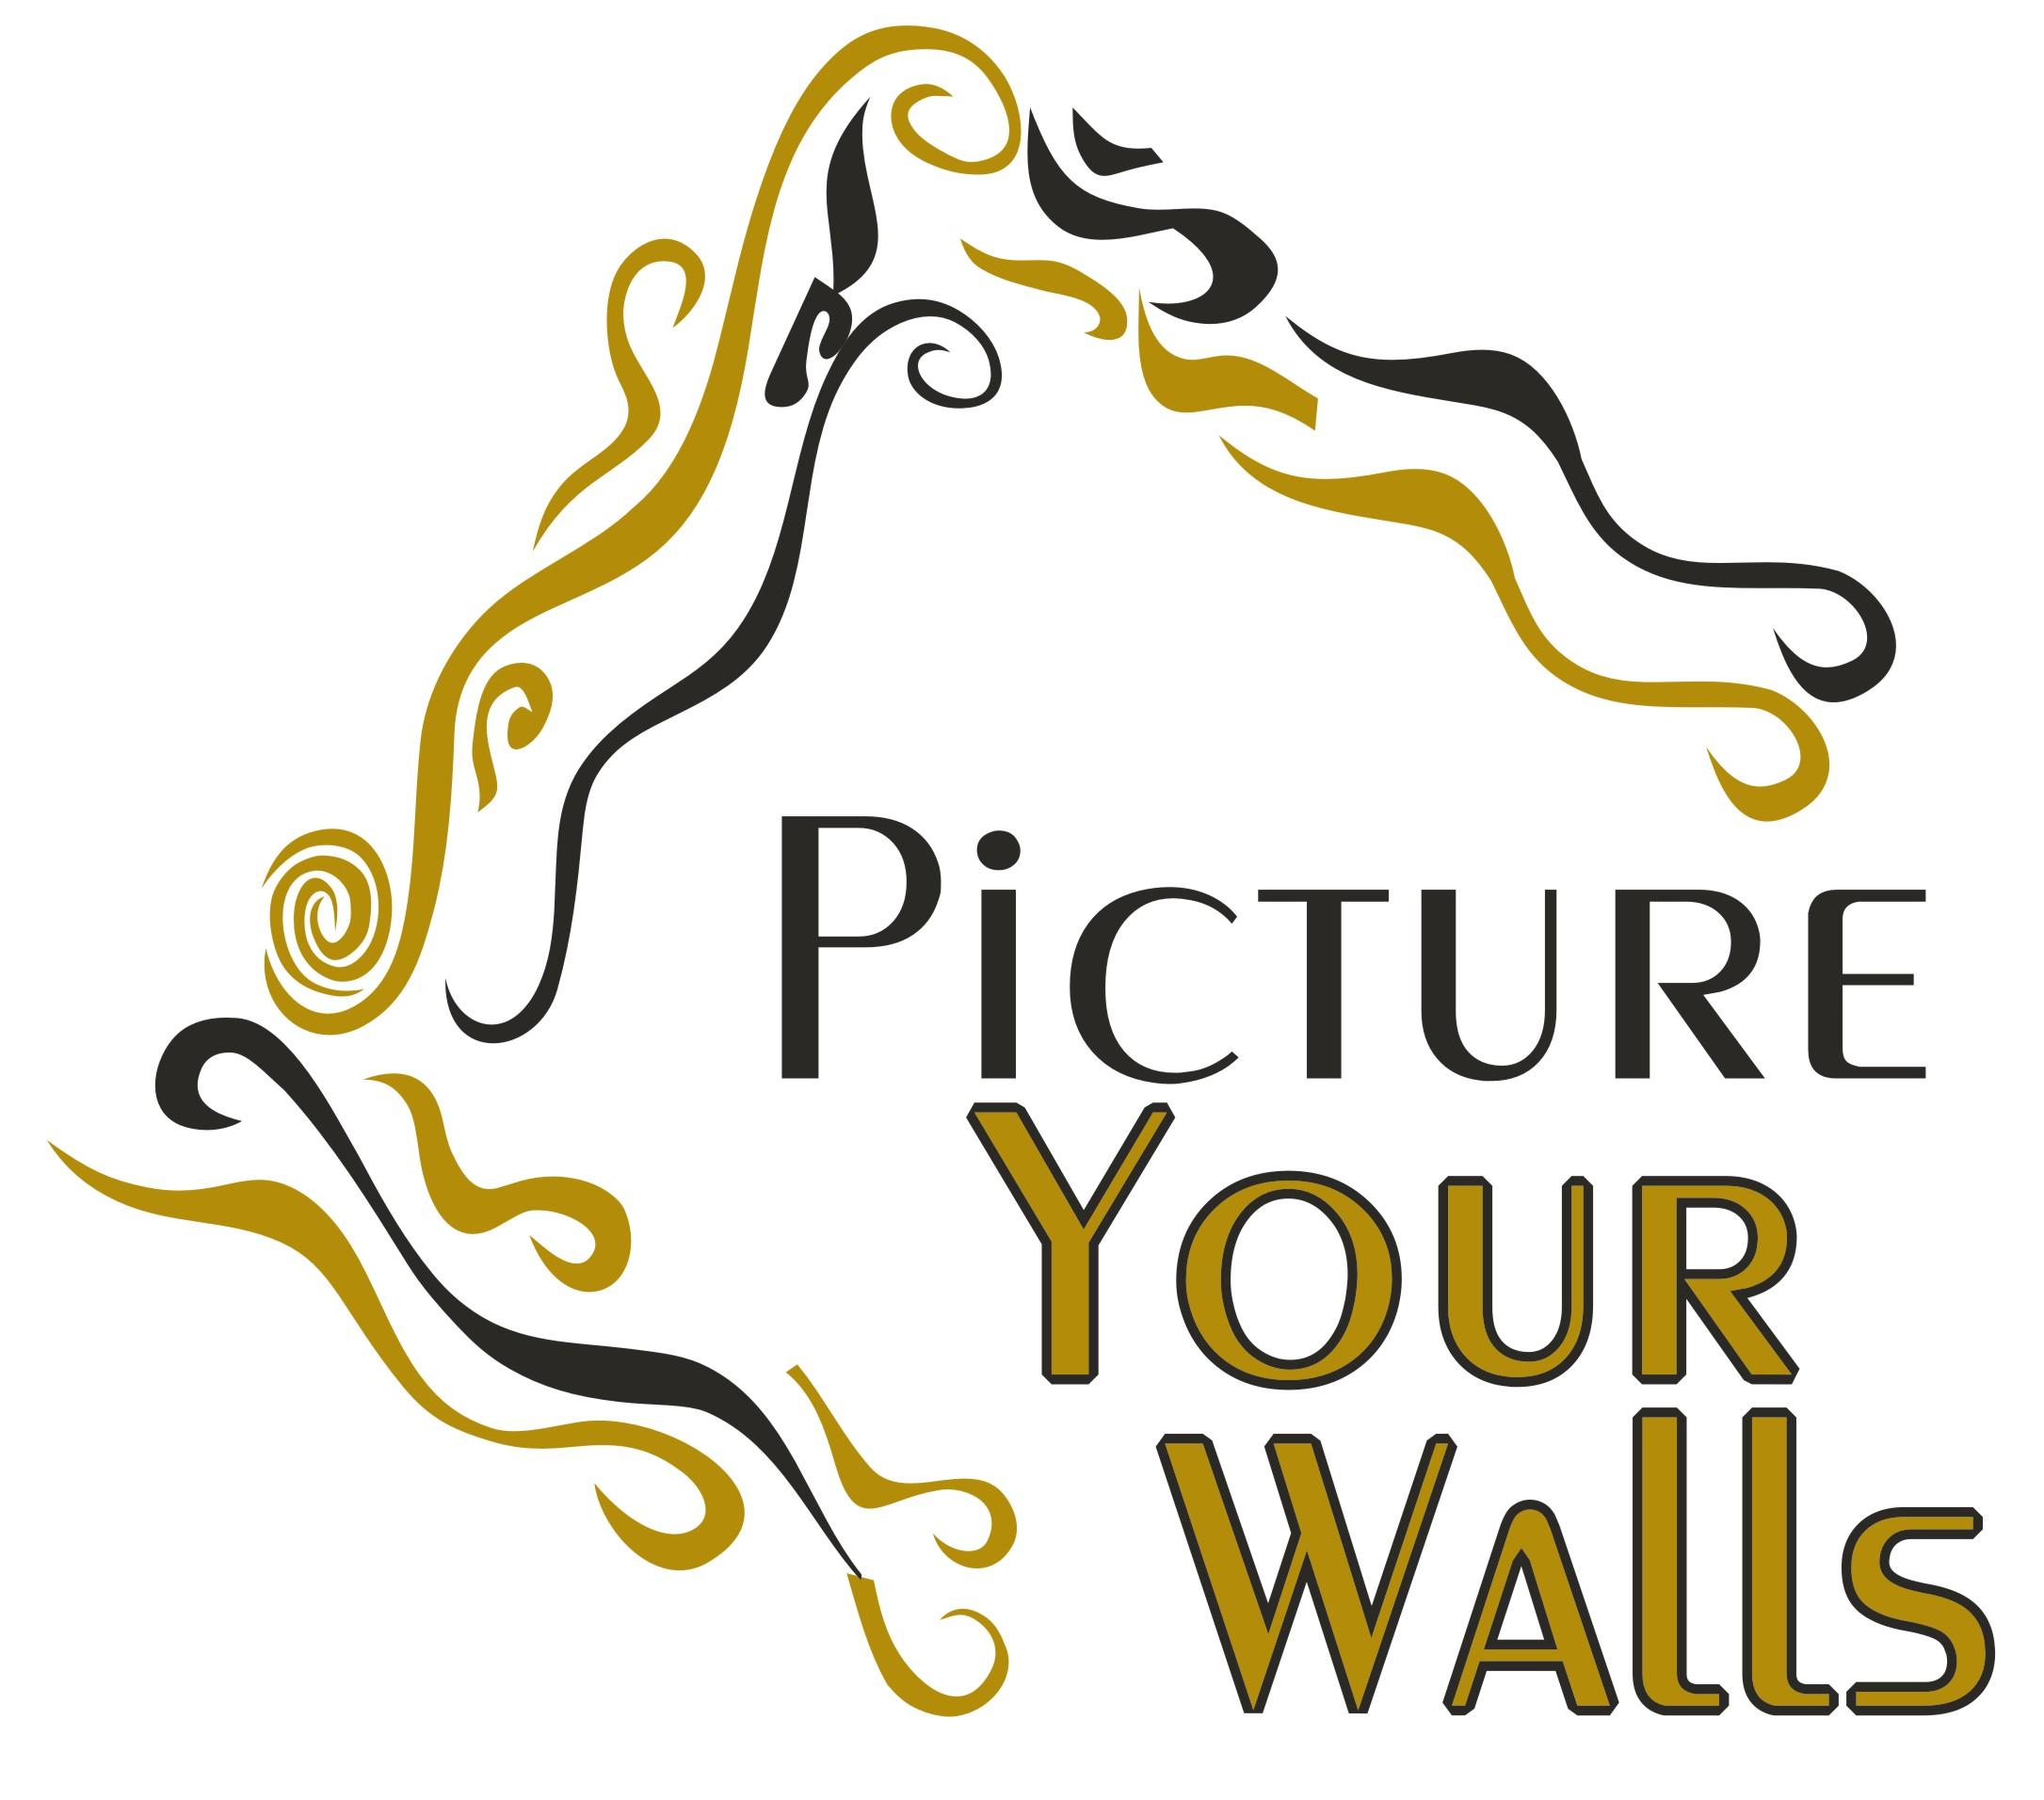 Picture Your Walls image 1